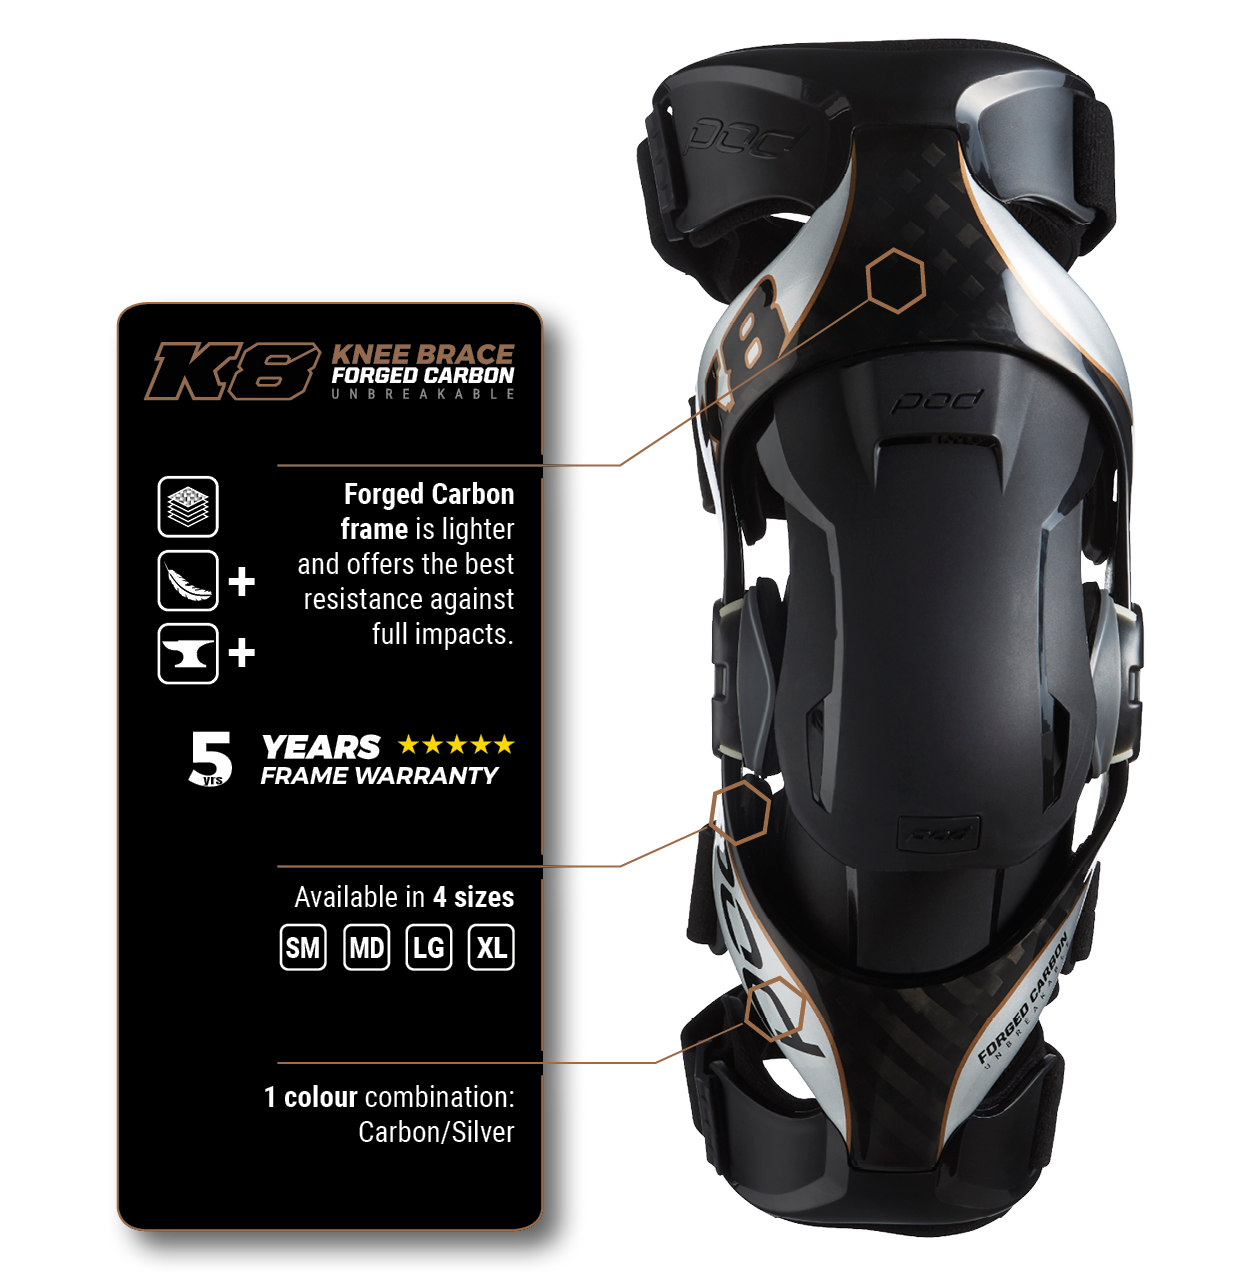 POD Active K8 Knee Brace - Features